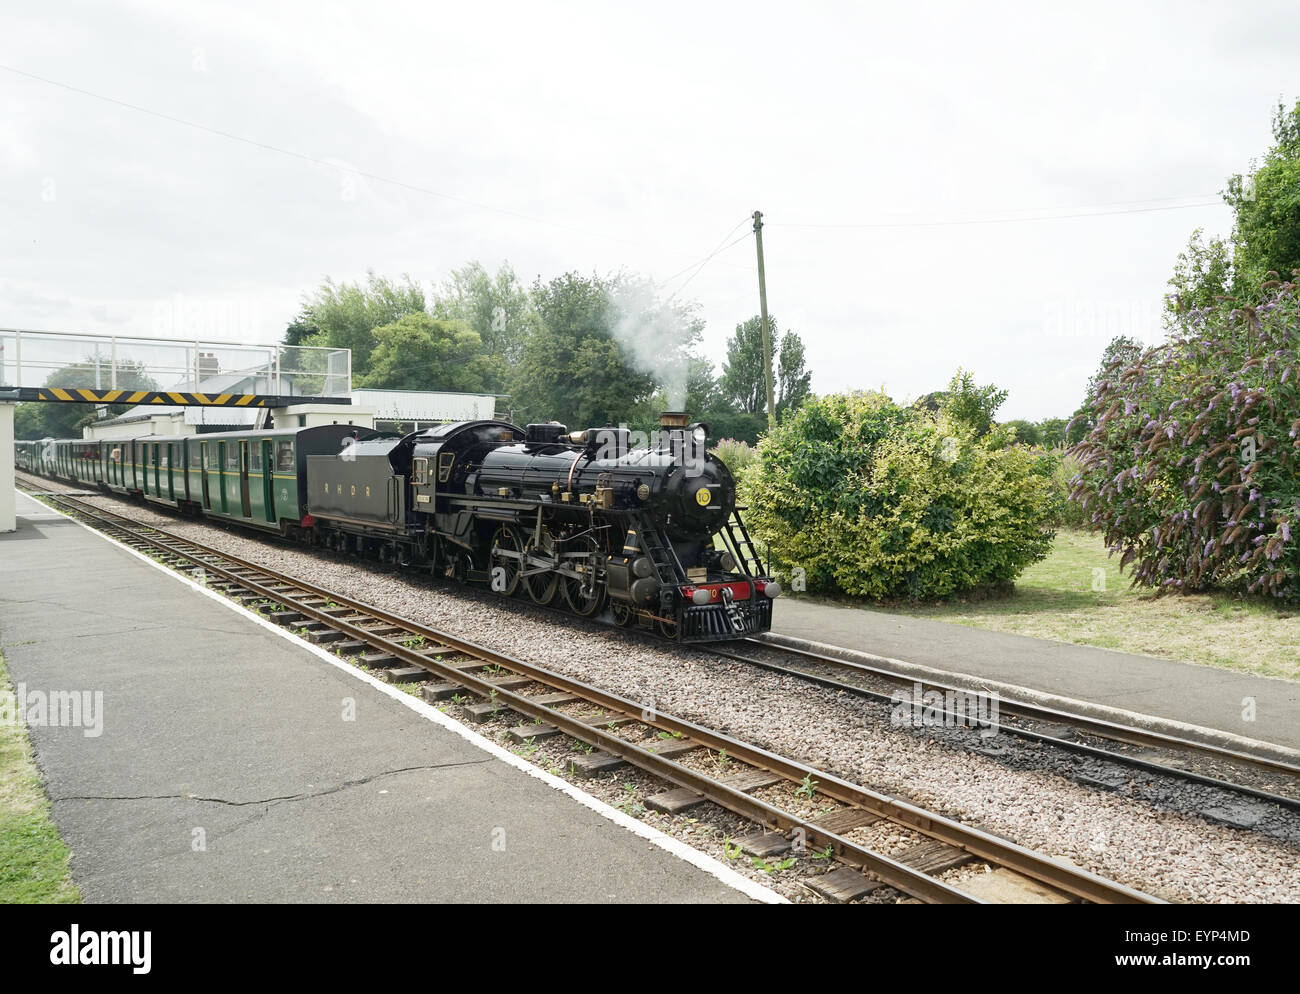 R.H.& D.R. Steam Locomotive No.10 'Dr Syn' at Dymchurch Station -1 - Stock Image